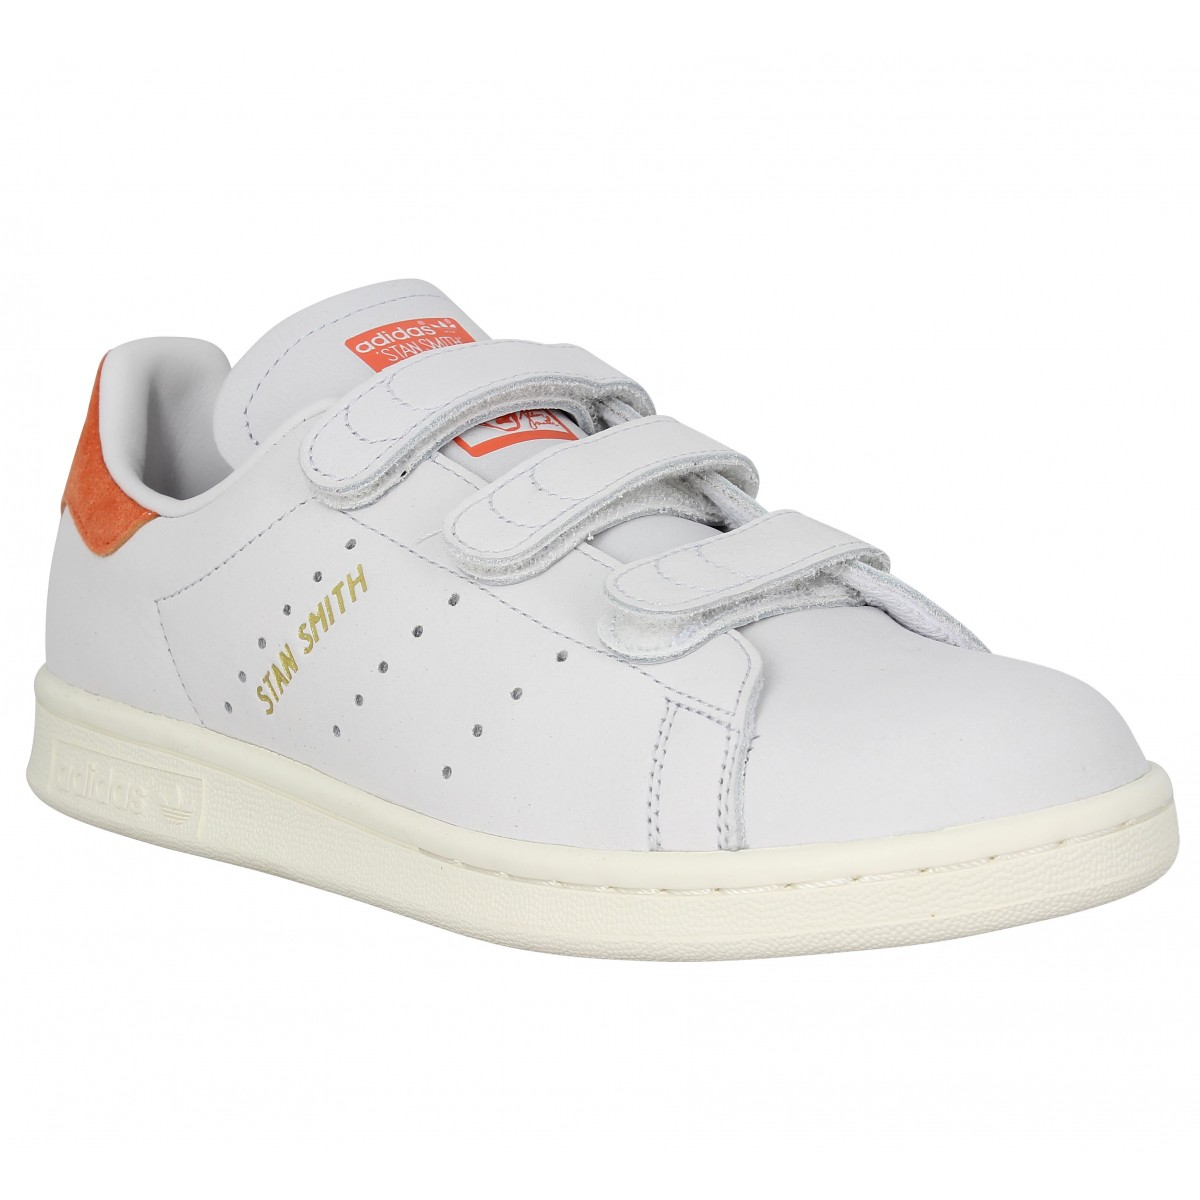 adidas a scratch pour homme Off 56% - www.bashhguidelines.org